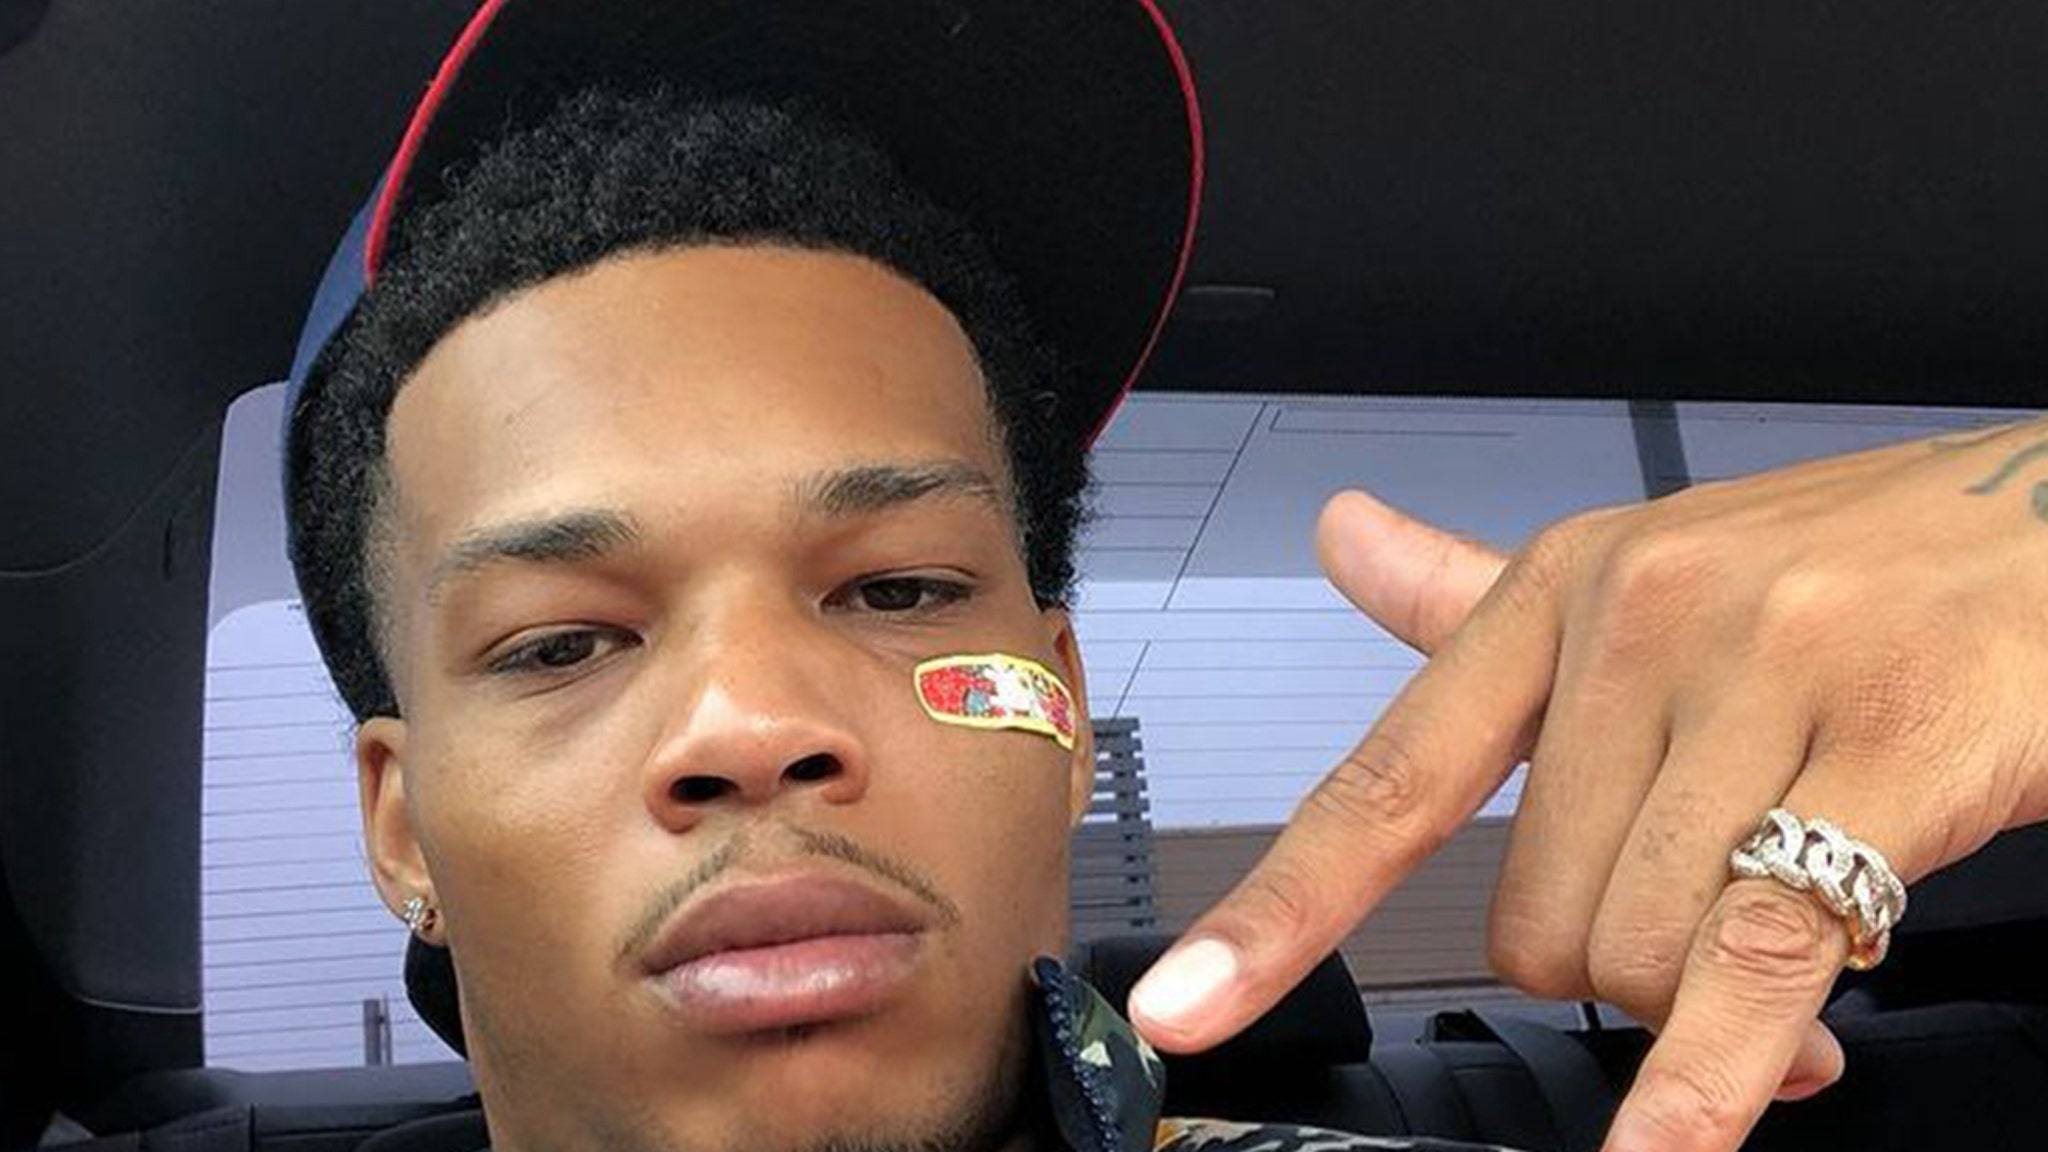 Bay Area Rapper Lil Yase Shot Dead at 25 Mysterious Circumstances